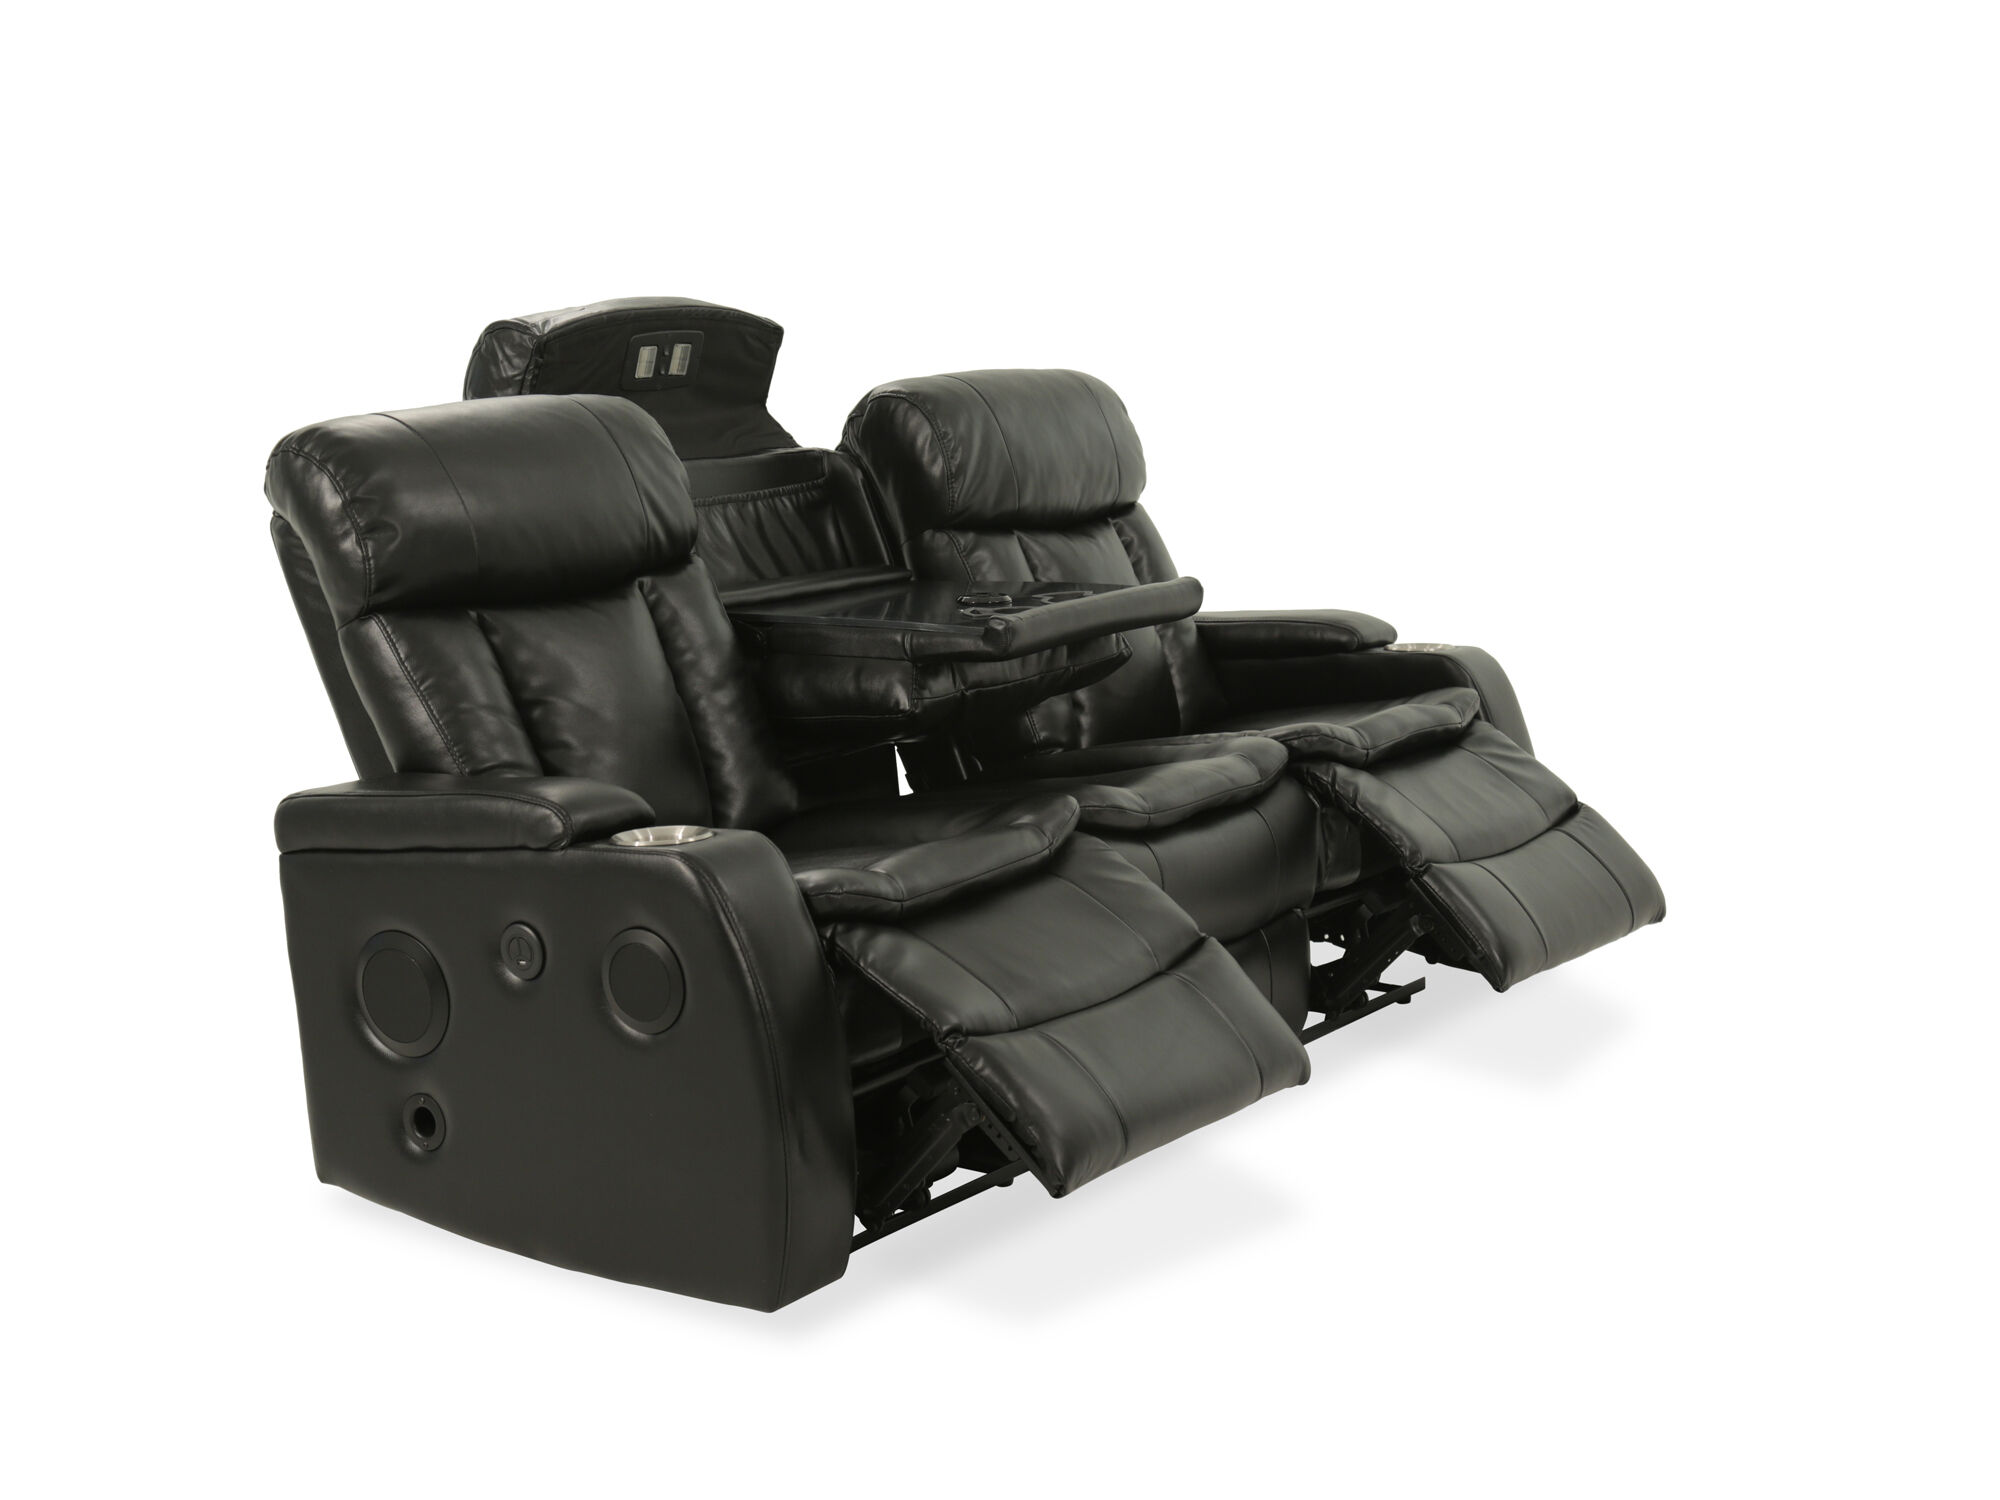 82 5 Power Reclining Sofa With Usb Port And Blutetooth In Black